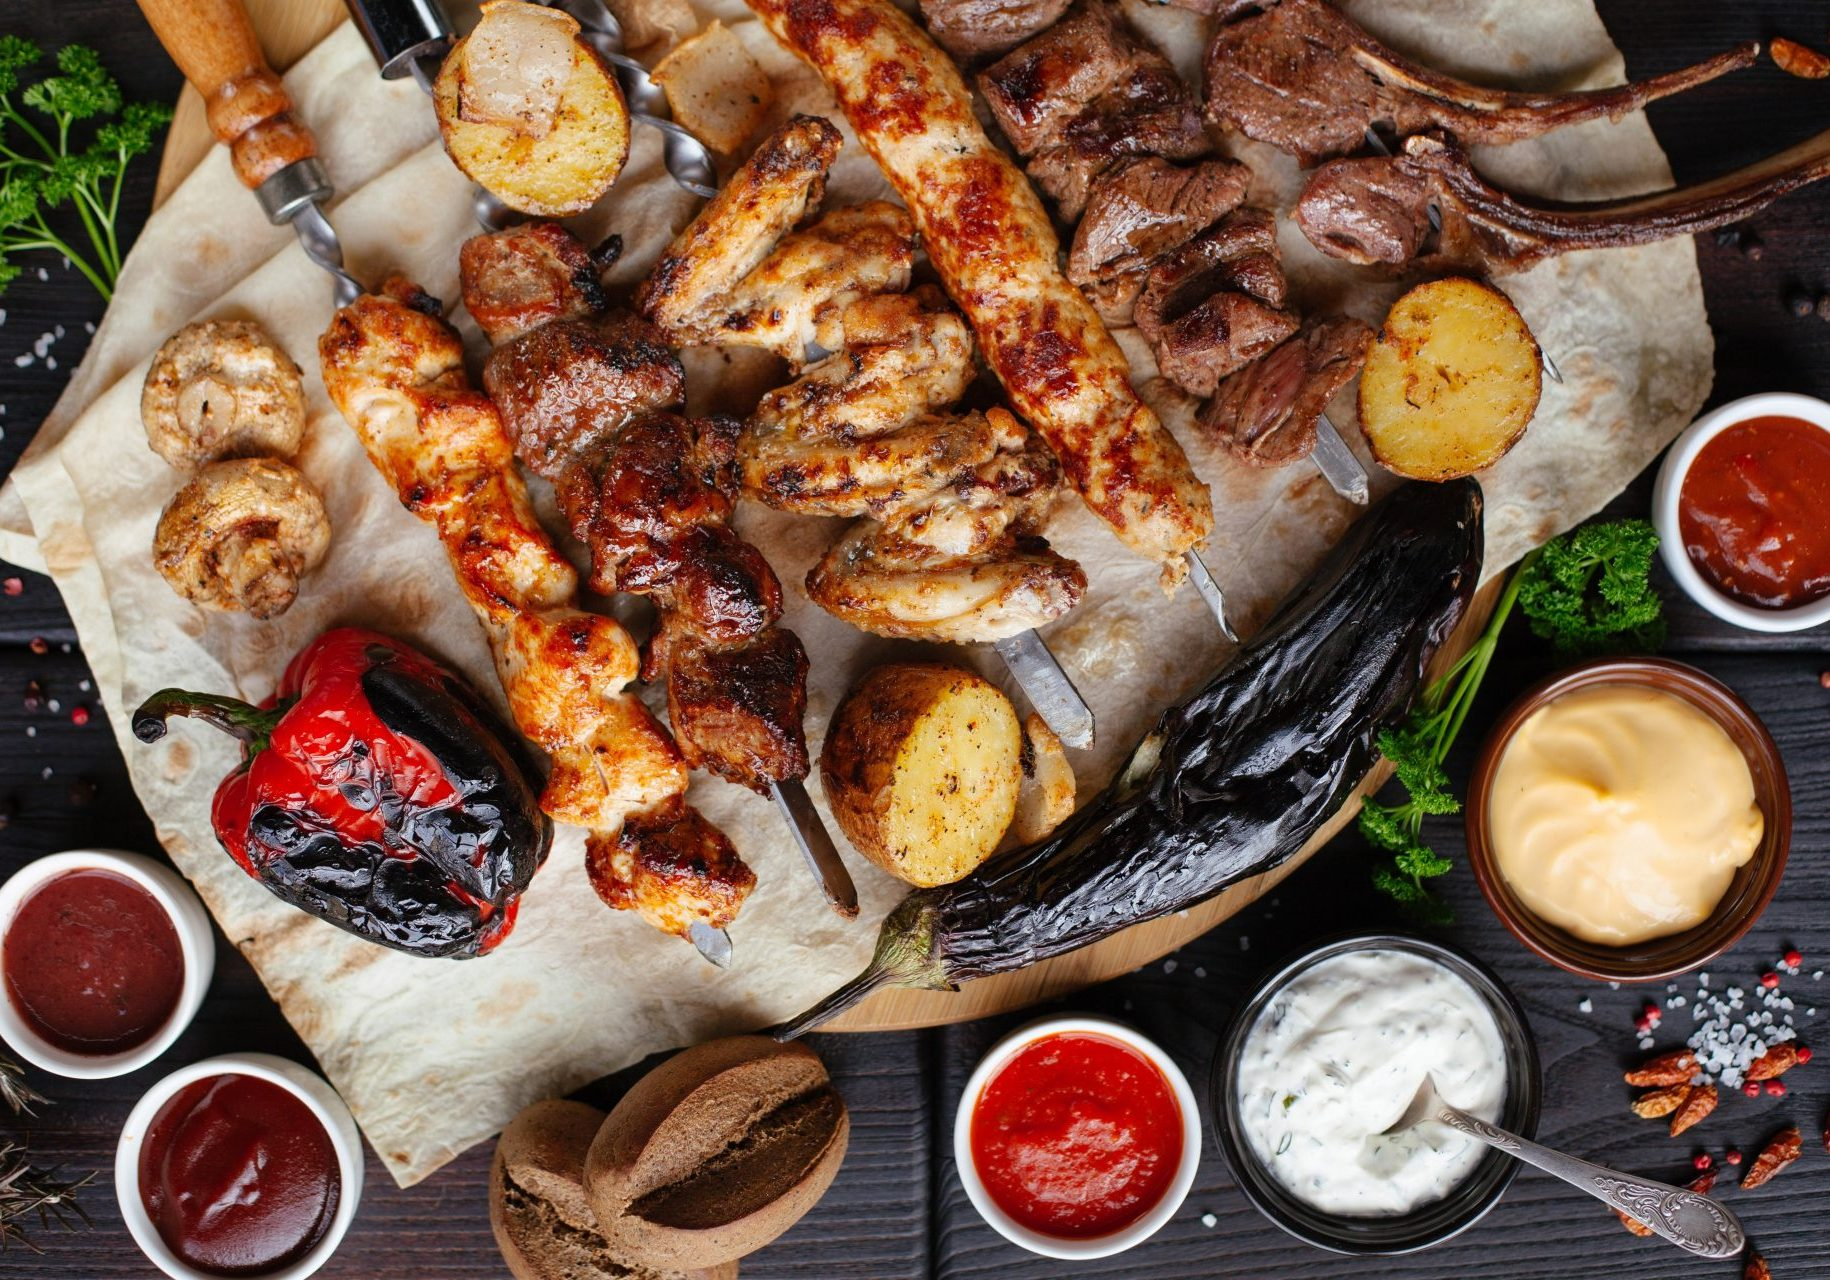 Barbecue meat and sausages with vegetables and dips on a black background